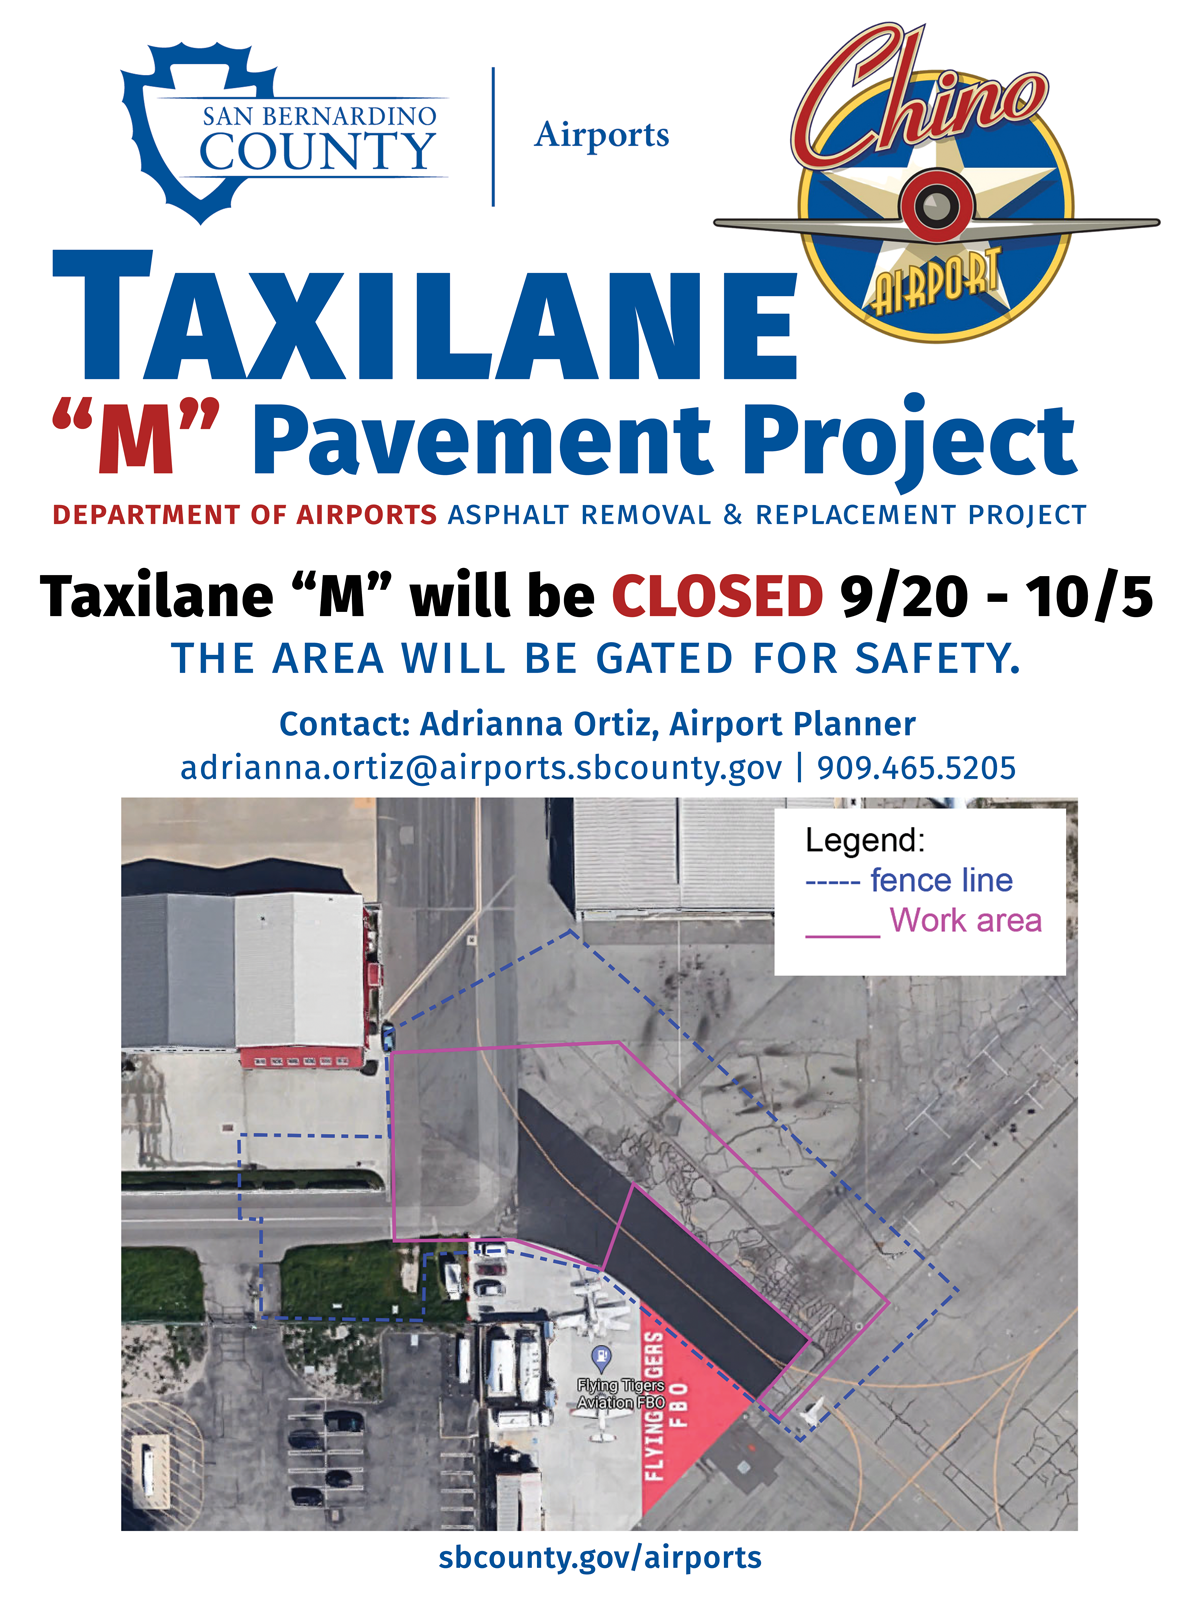 Date%20Extended-Airports-CNO-Pavement-Project-Signage-093021